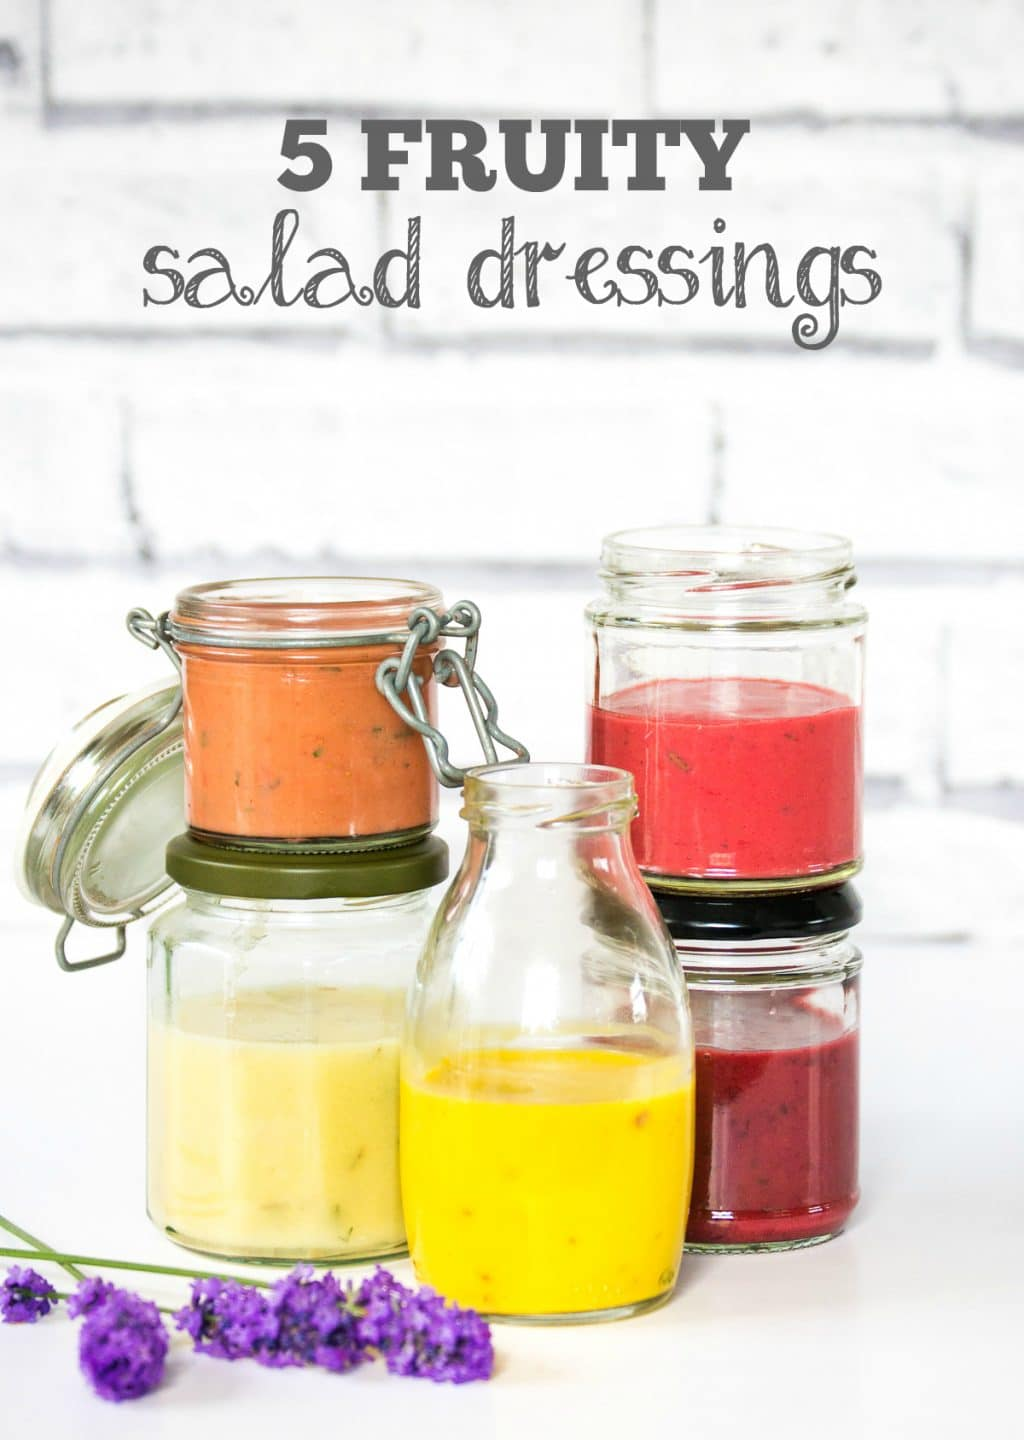 Five Fruity Salad Dressings